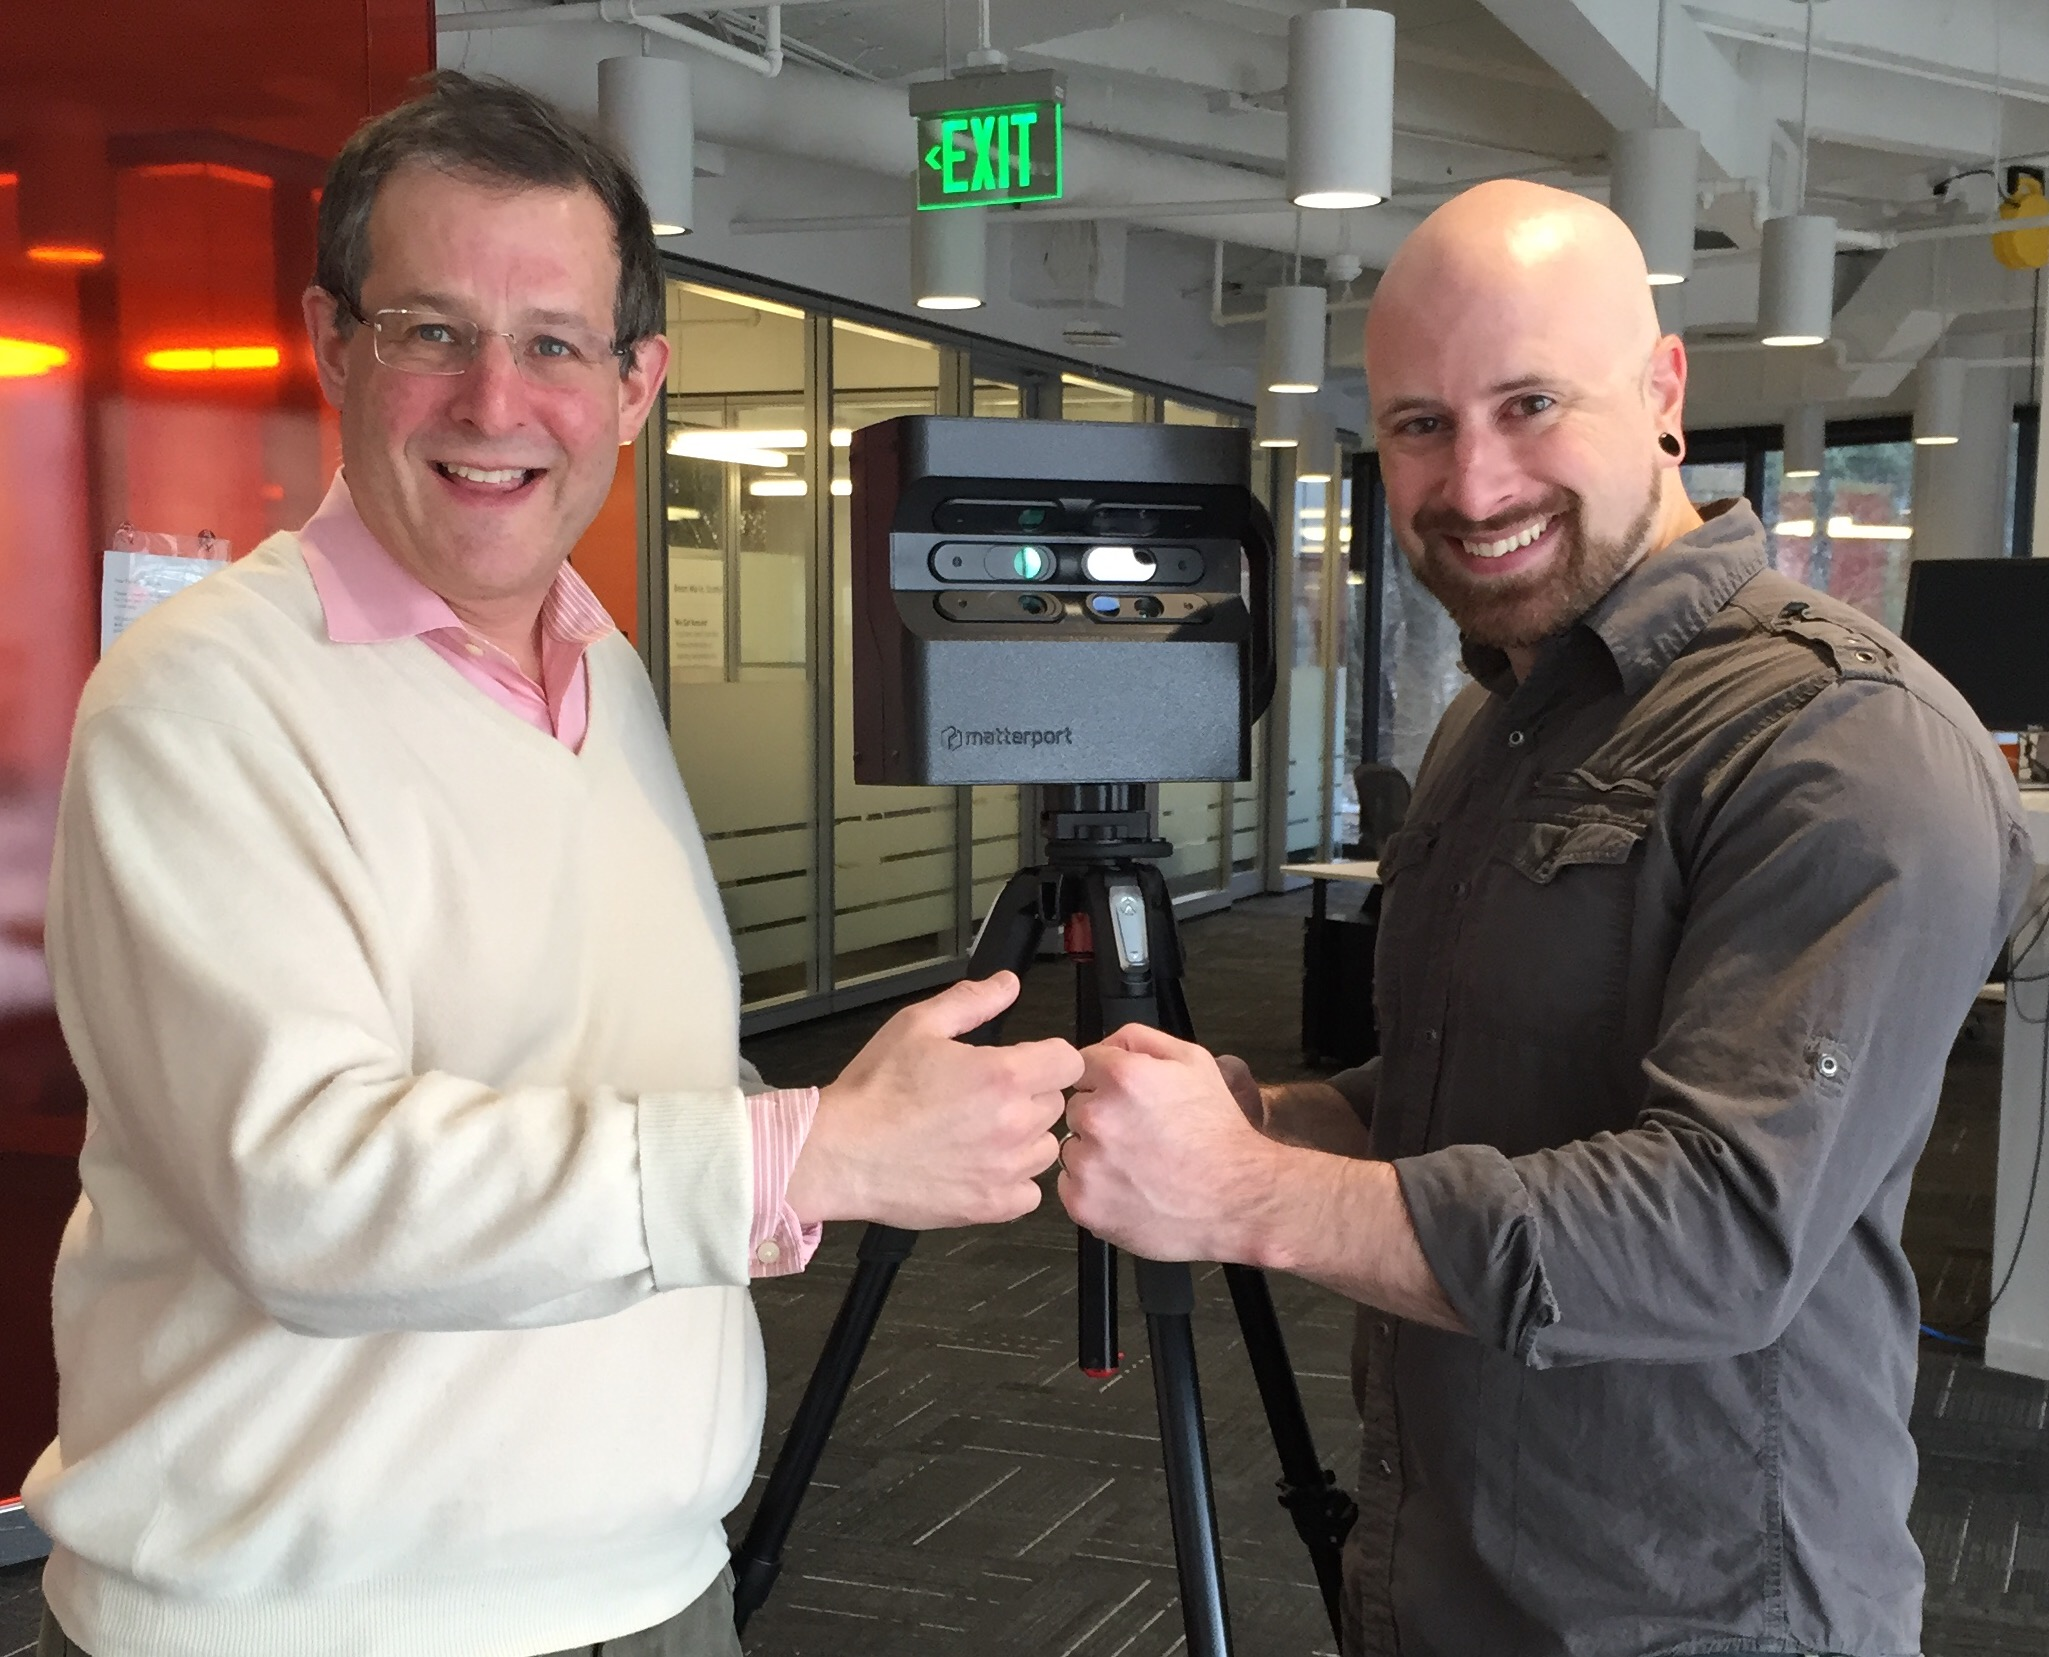 We Get Around Founder, CEO and Chief Photographer Dan Smigrod and Ninja Post Founder Mike Wilt with Matterport 3D Pro Camera | Image by Kerry Abner